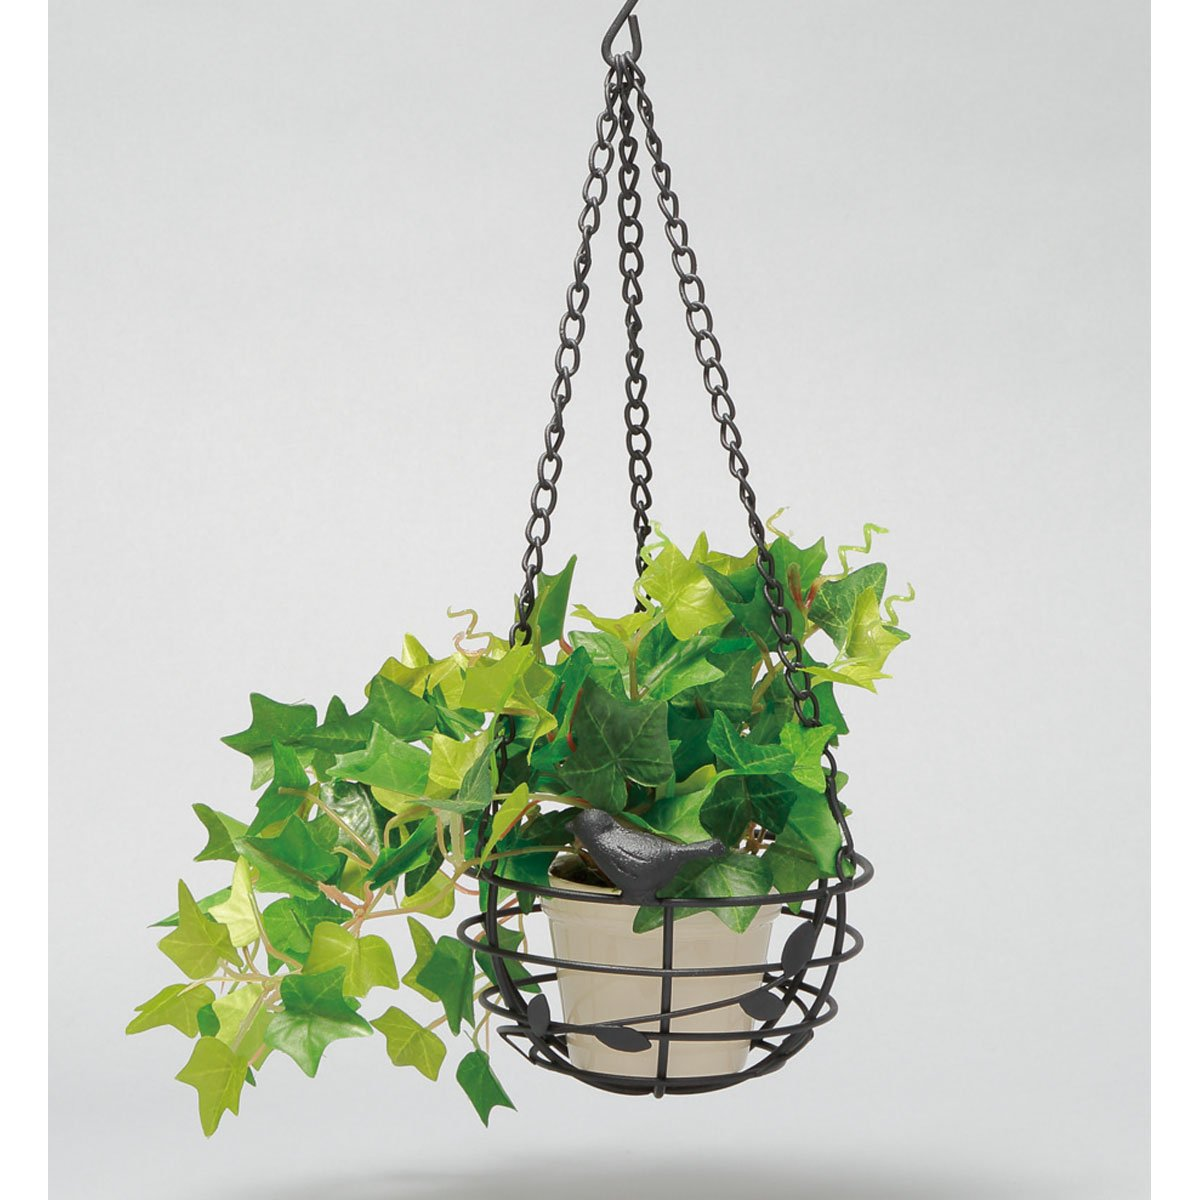 For Hanging